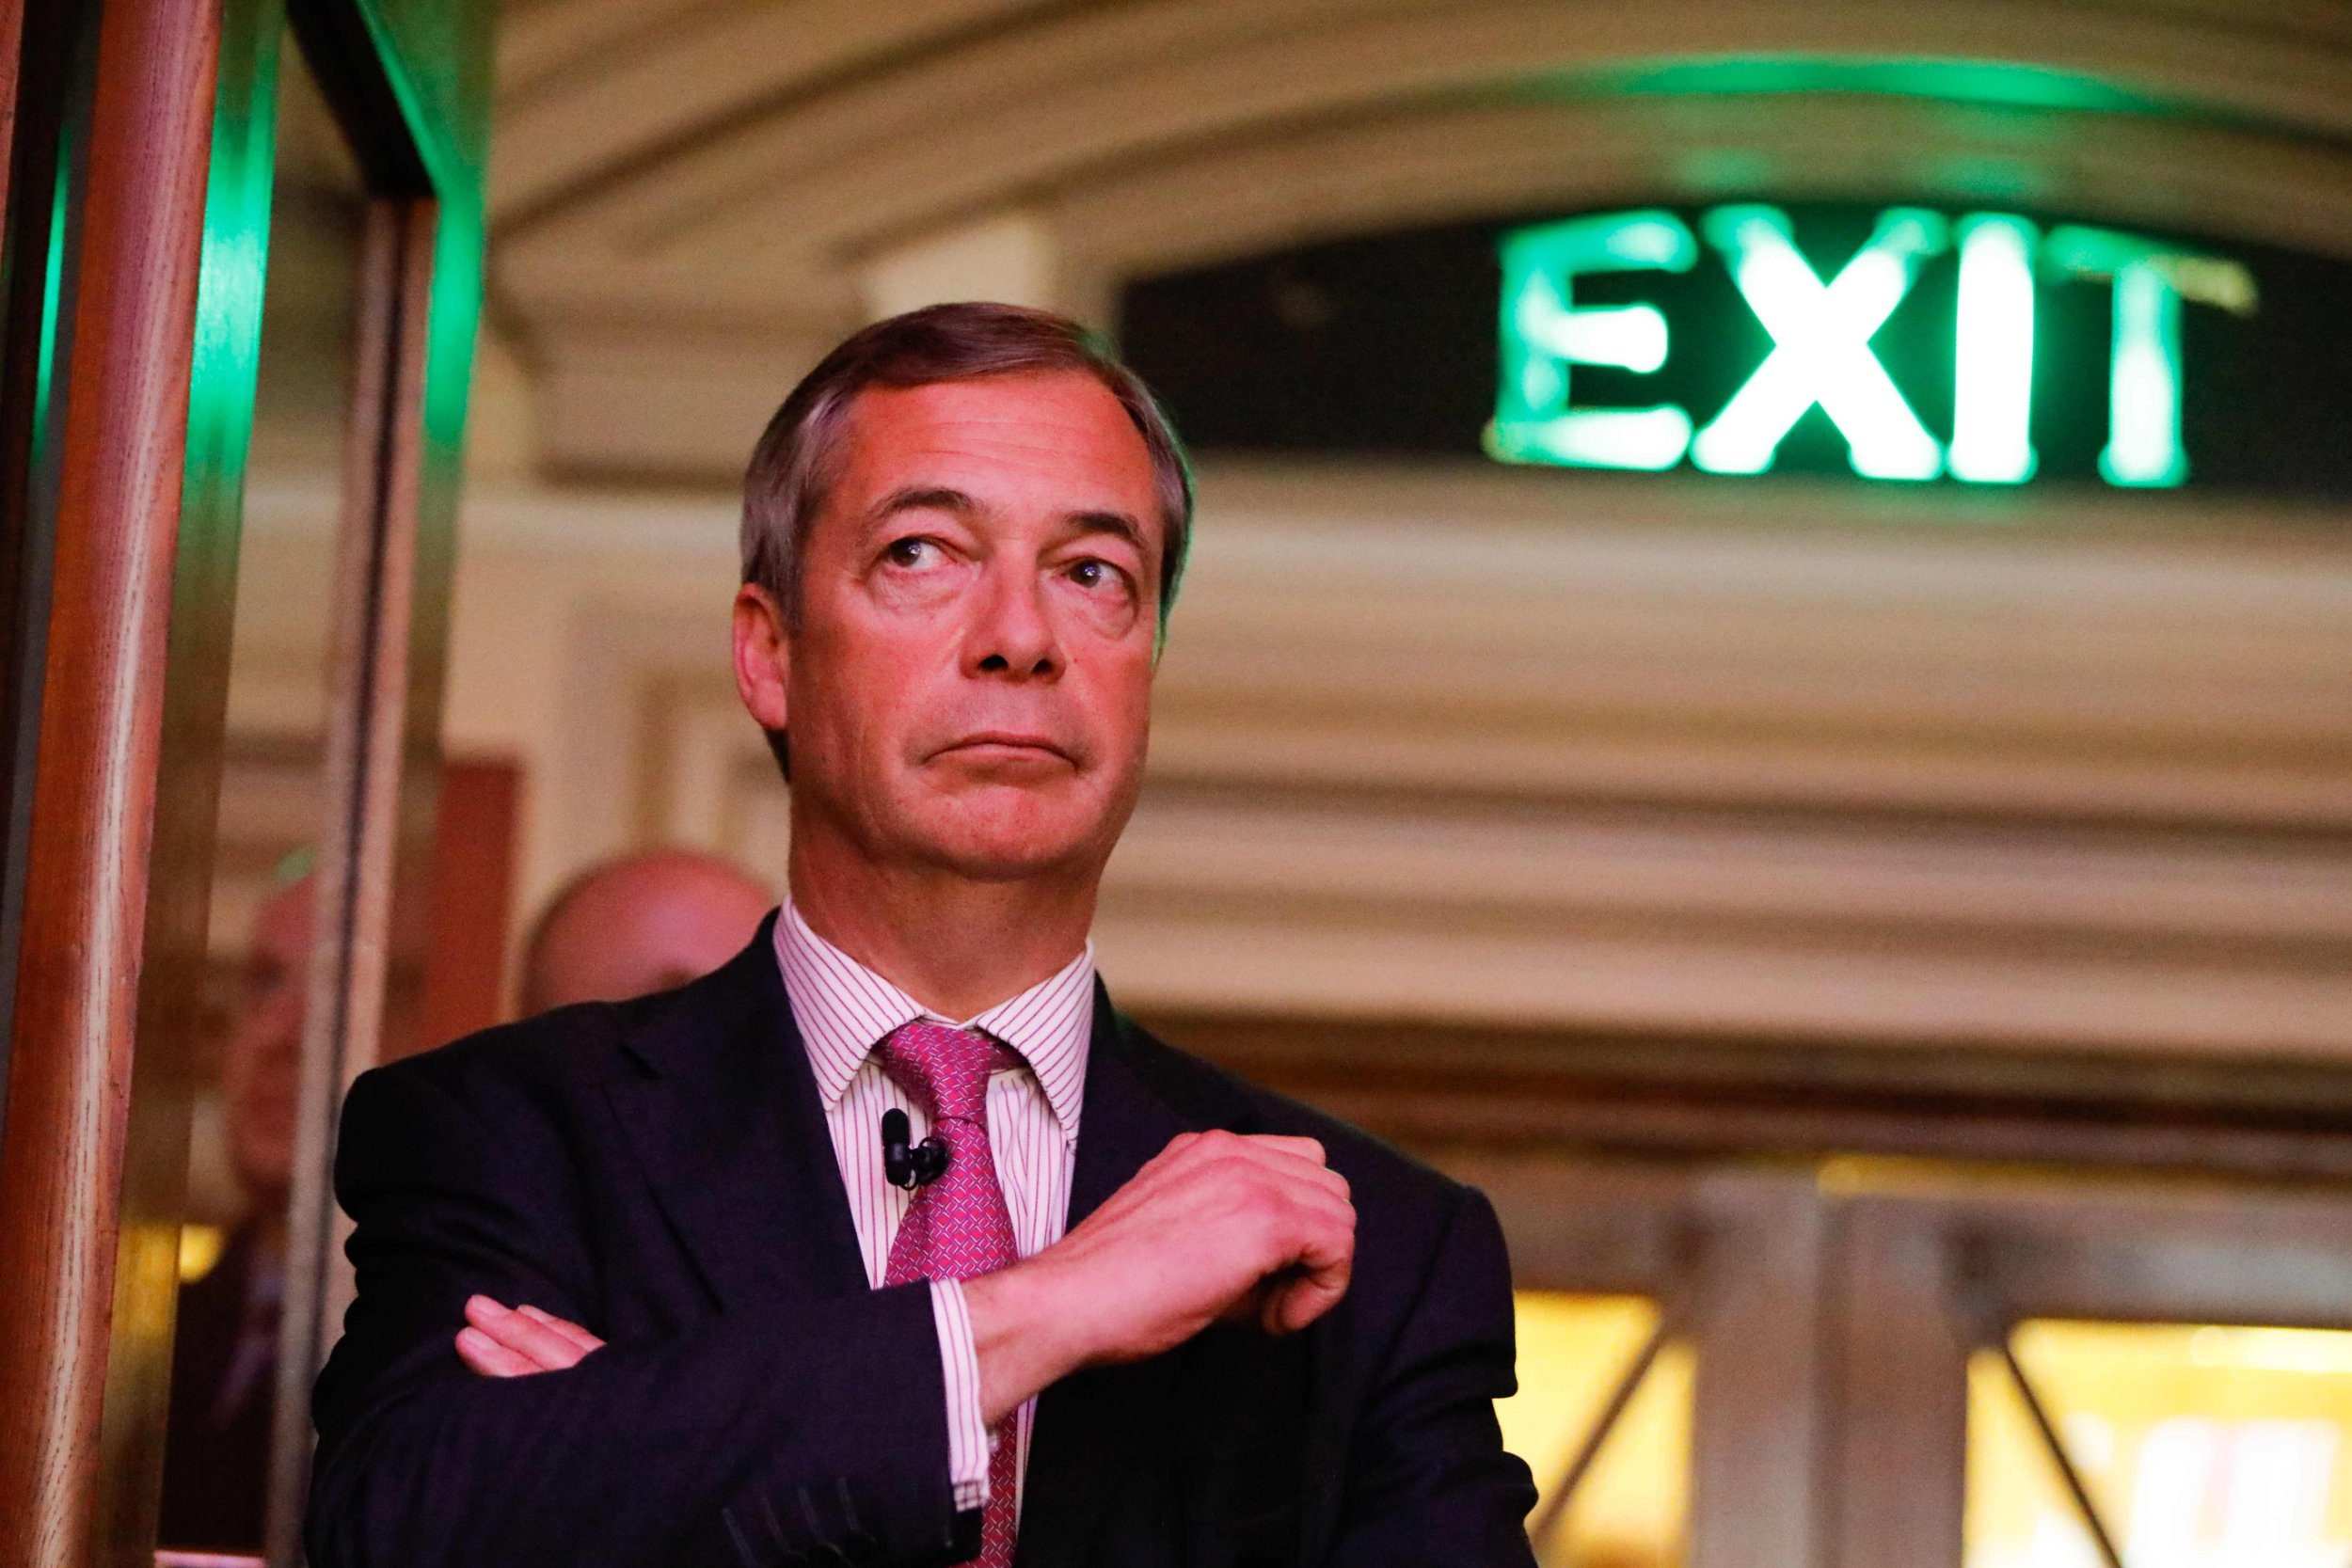 How To Join Nigel Farages New Brexit Party